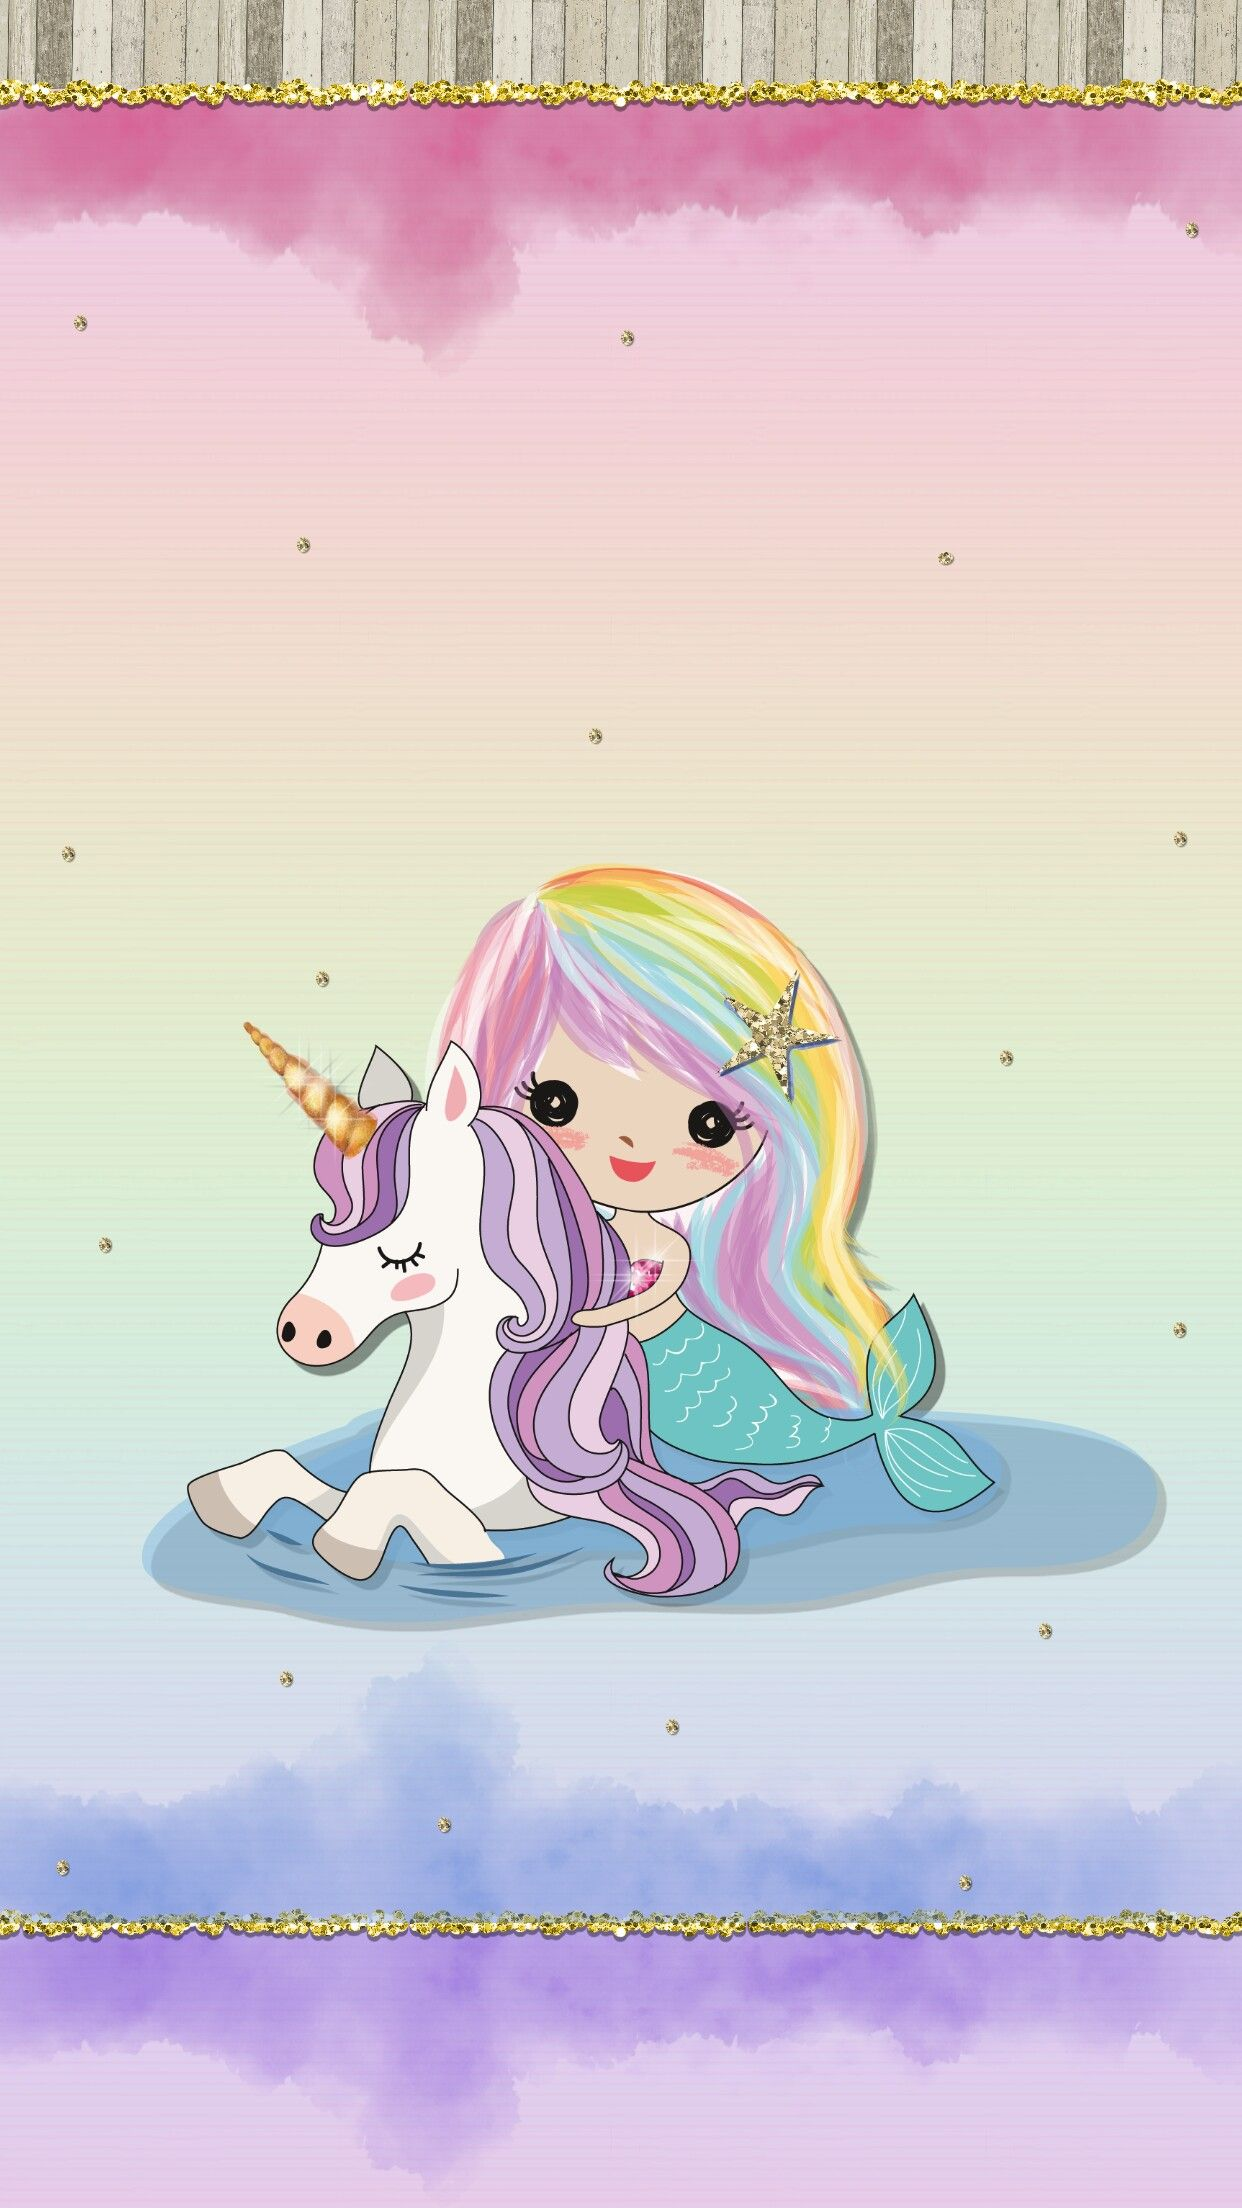 Mermaid Living Mermaid Wallpapers Unicorn Wallpaper Unicorn Art